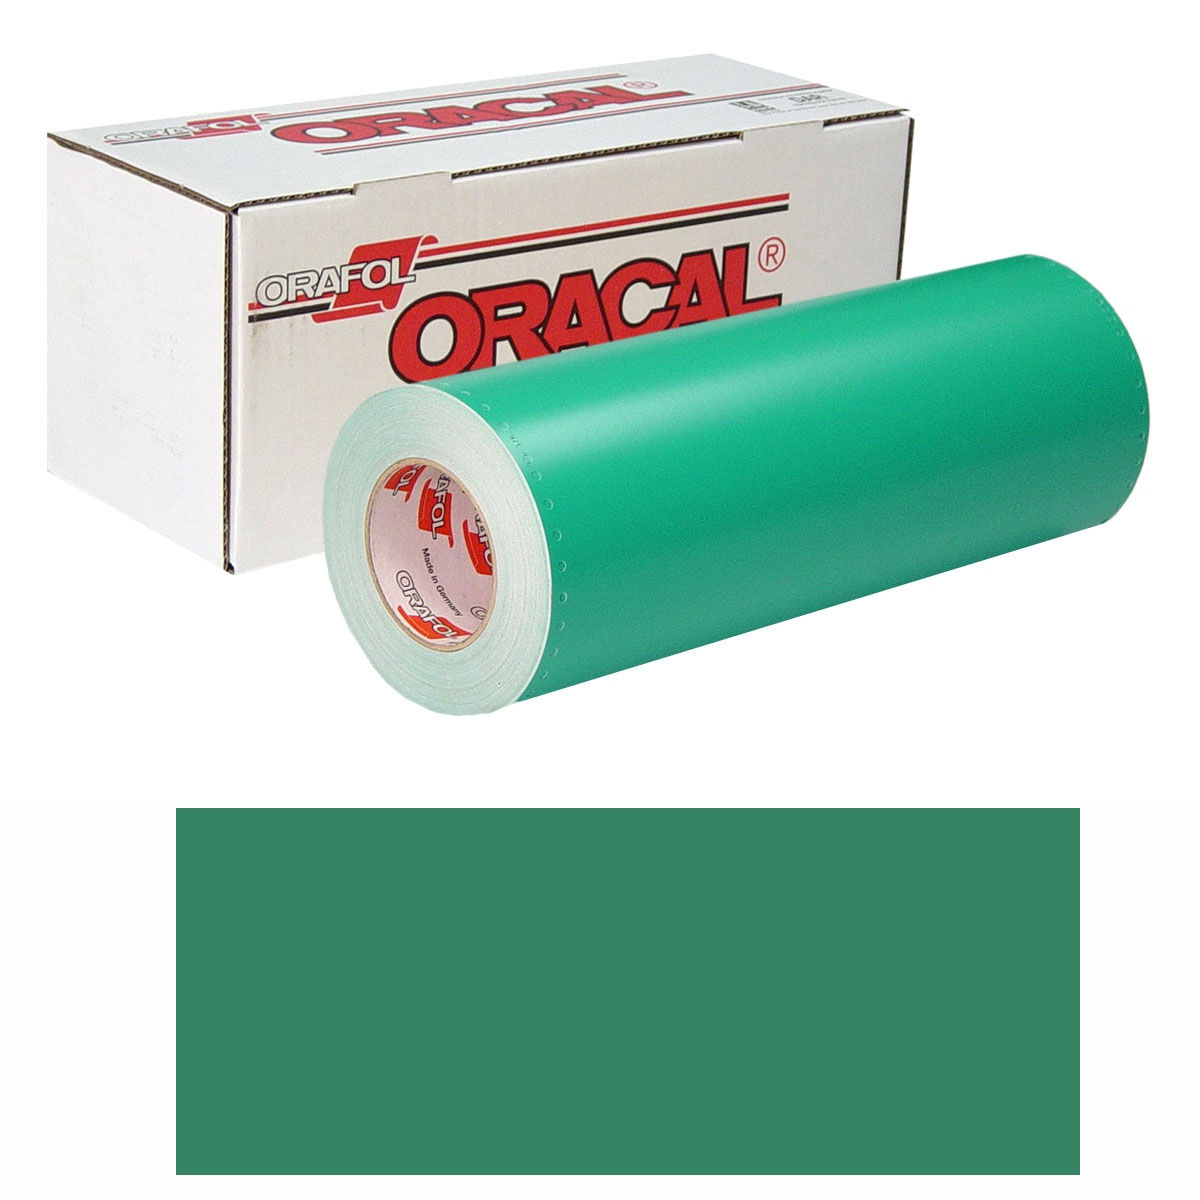 ORACAL 8500 15In X 50Yd 087 Emerald